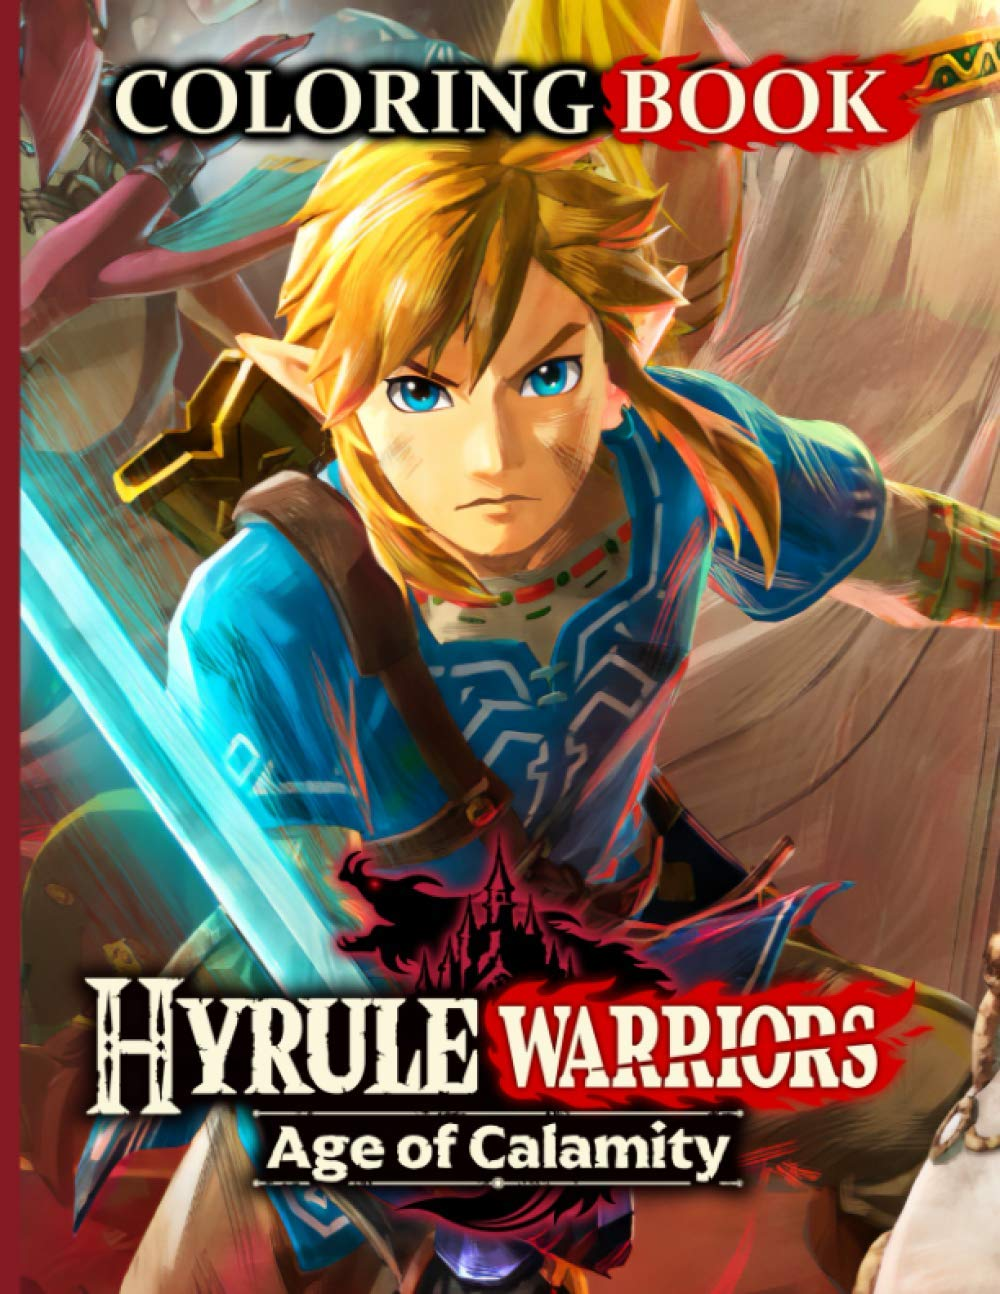 Hyrule Warriors Age Of Calamity Coloring Book High Quality Hyrule Warriors Age Of Calamity Adult Coloring Books For Men And Women Akahito Uno 9798553630065 Amazon Com Books